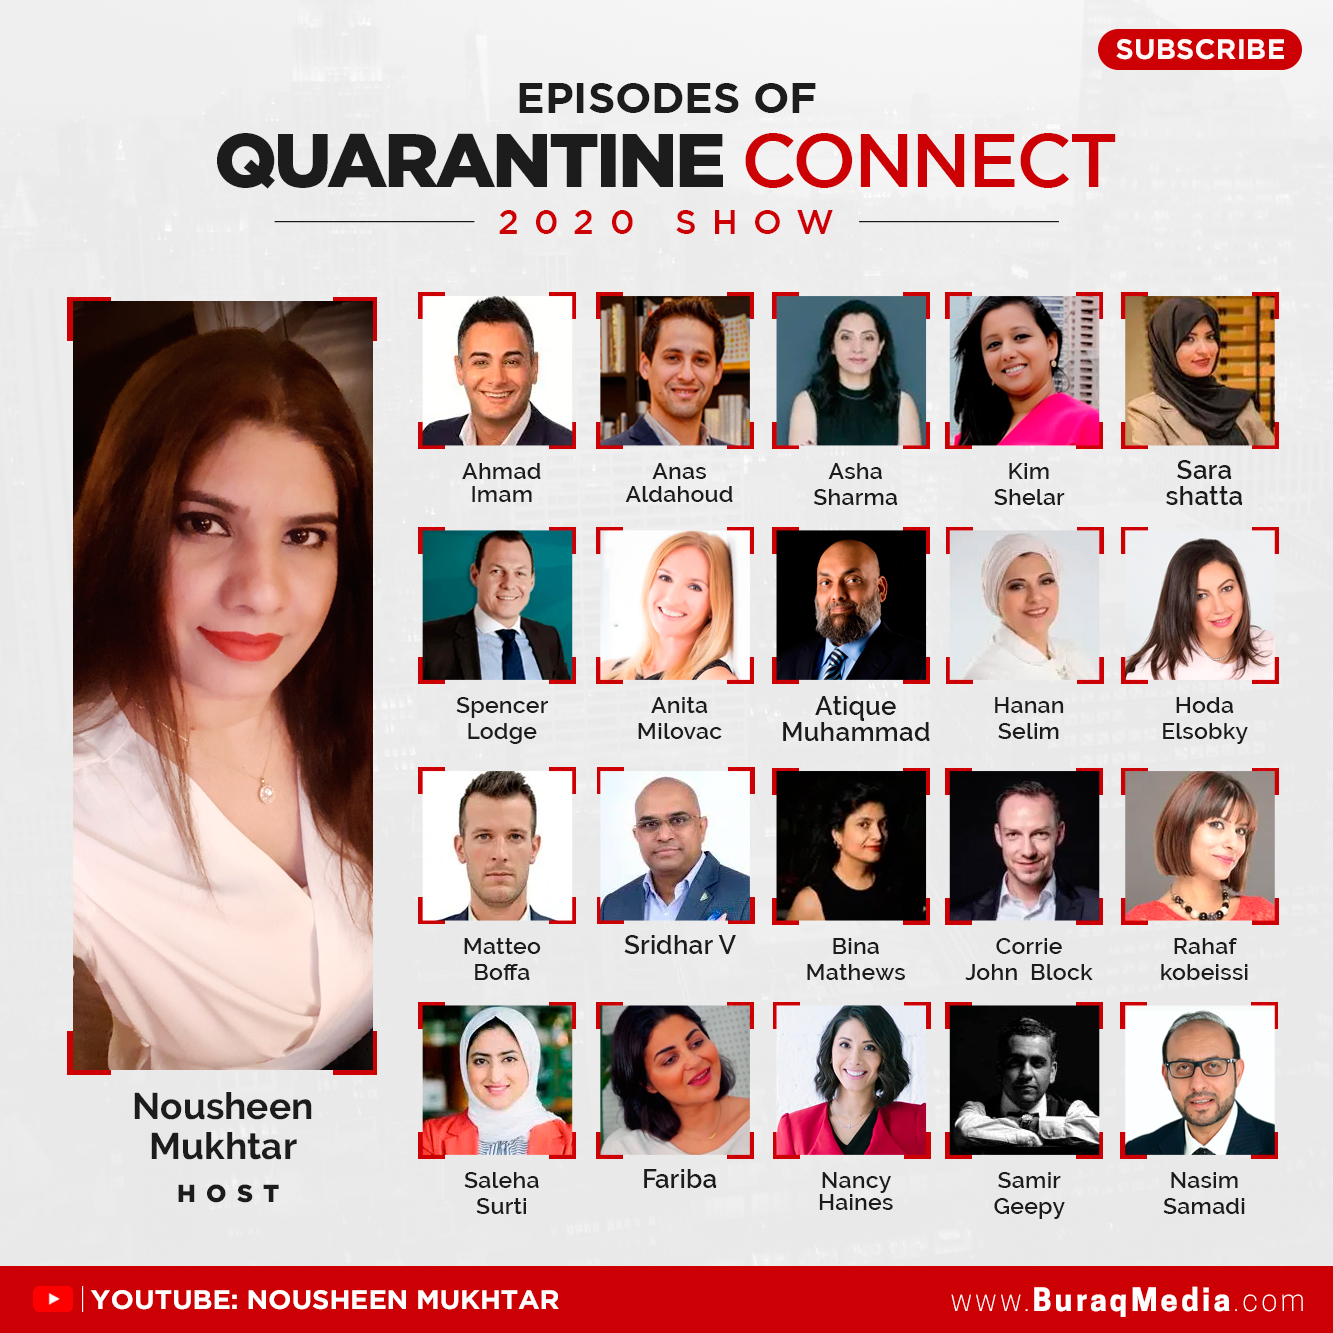 Quarantine connect 2020 - How to build a lasting relationship